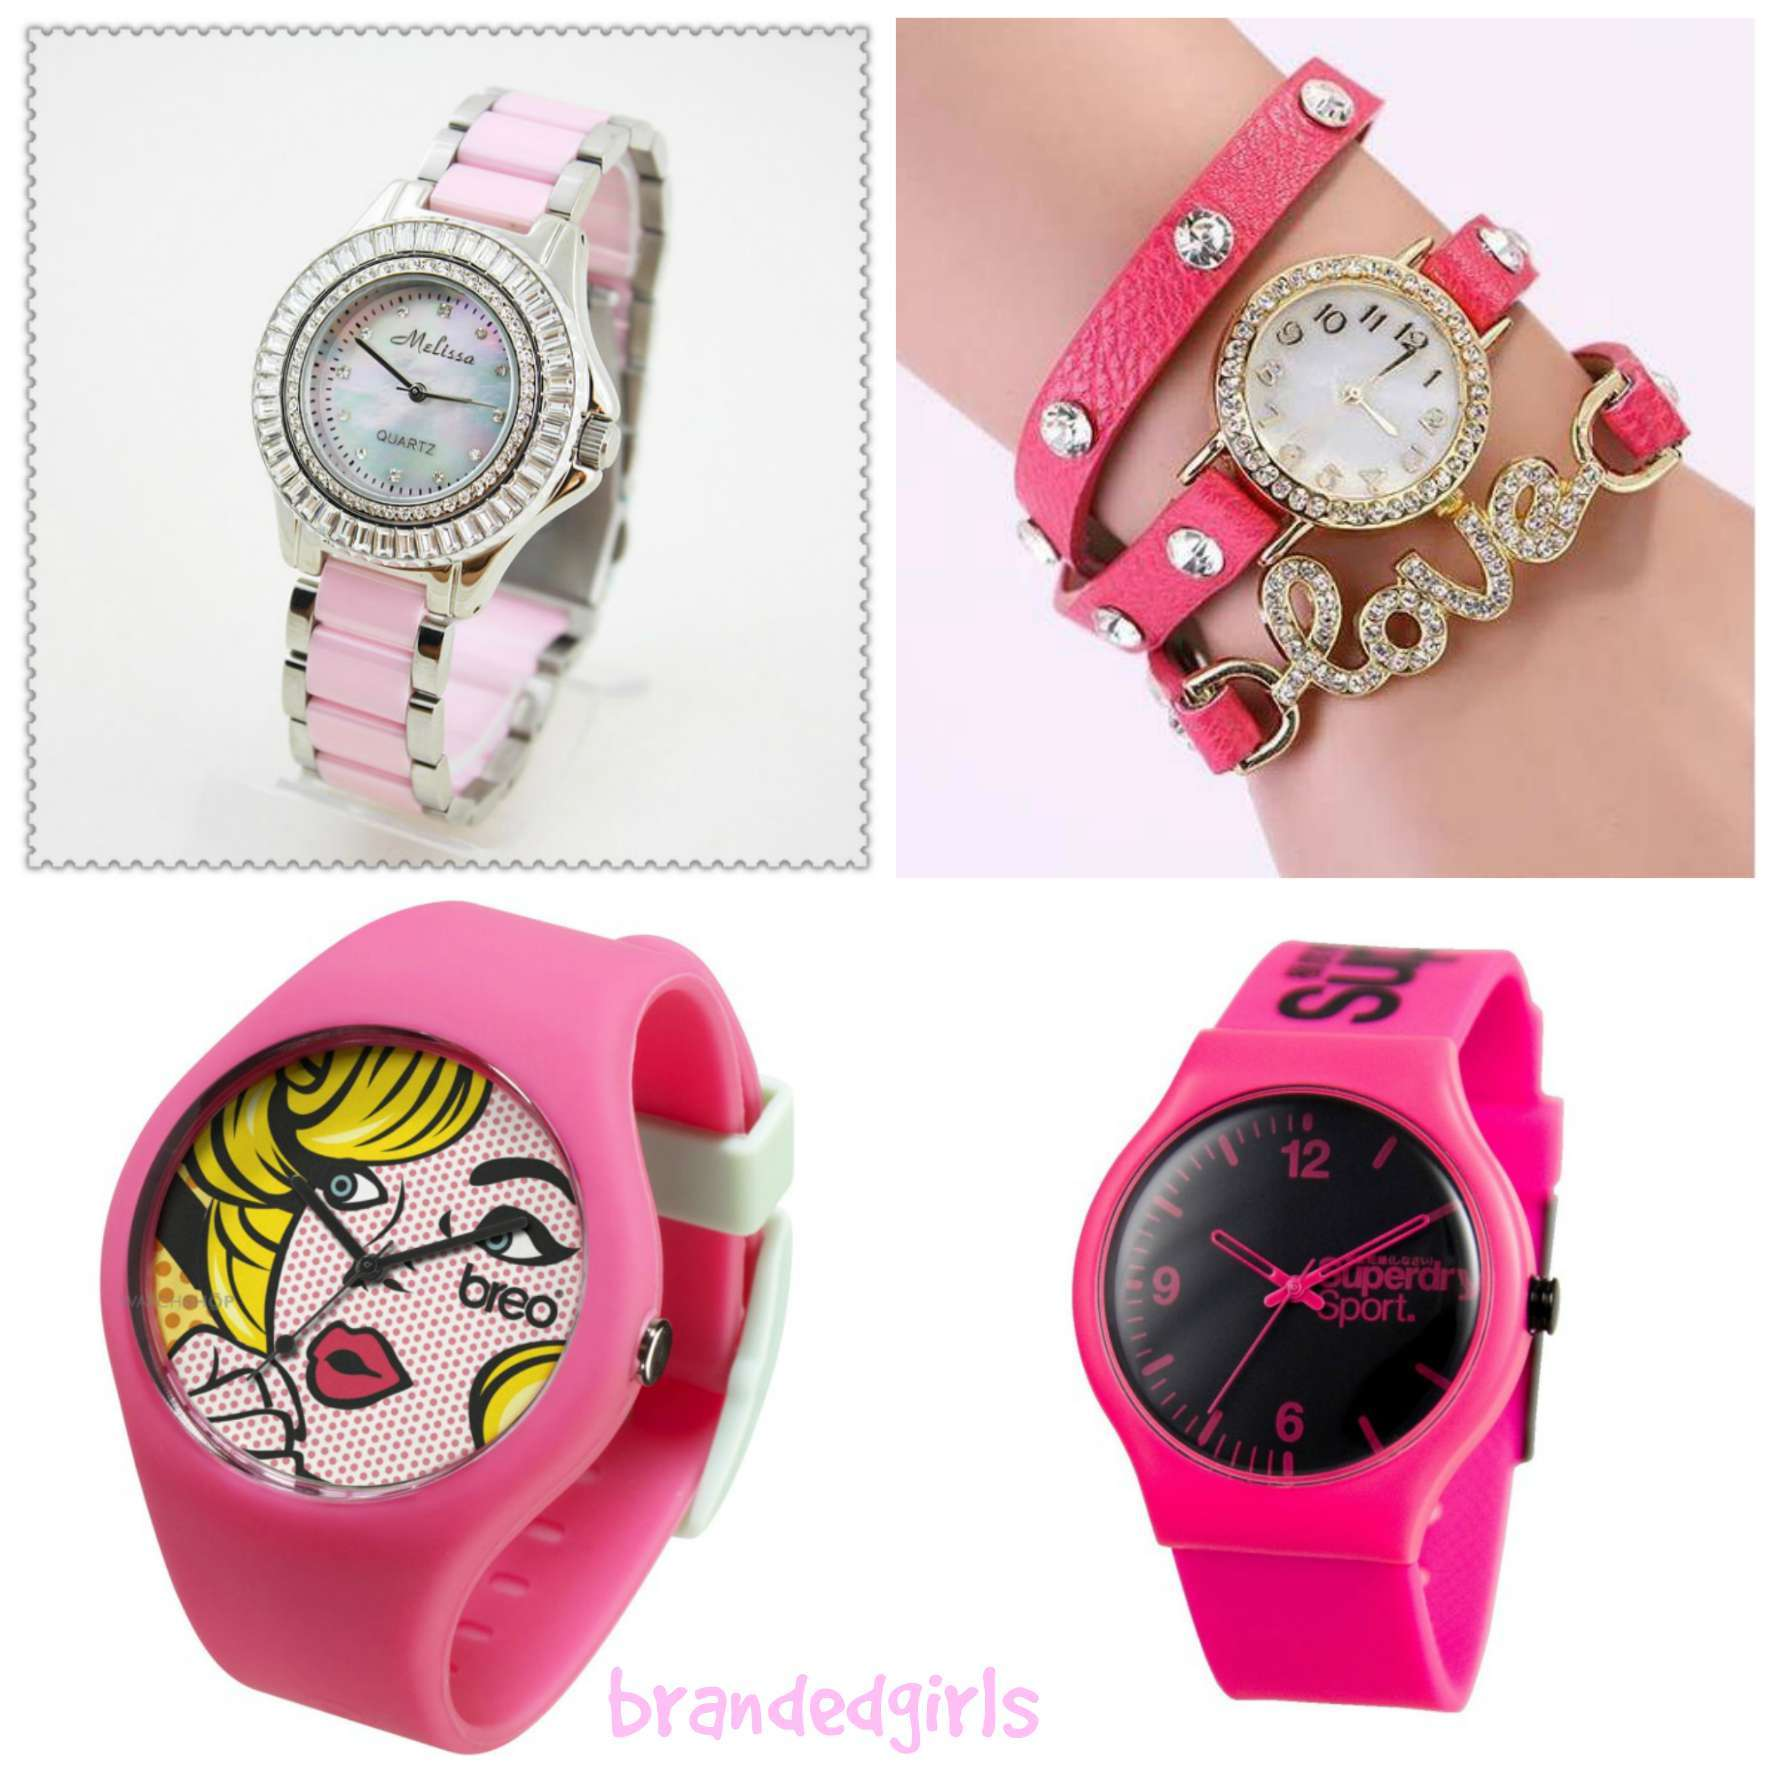 Trendy Pink Watches For Teen Girls and Kids